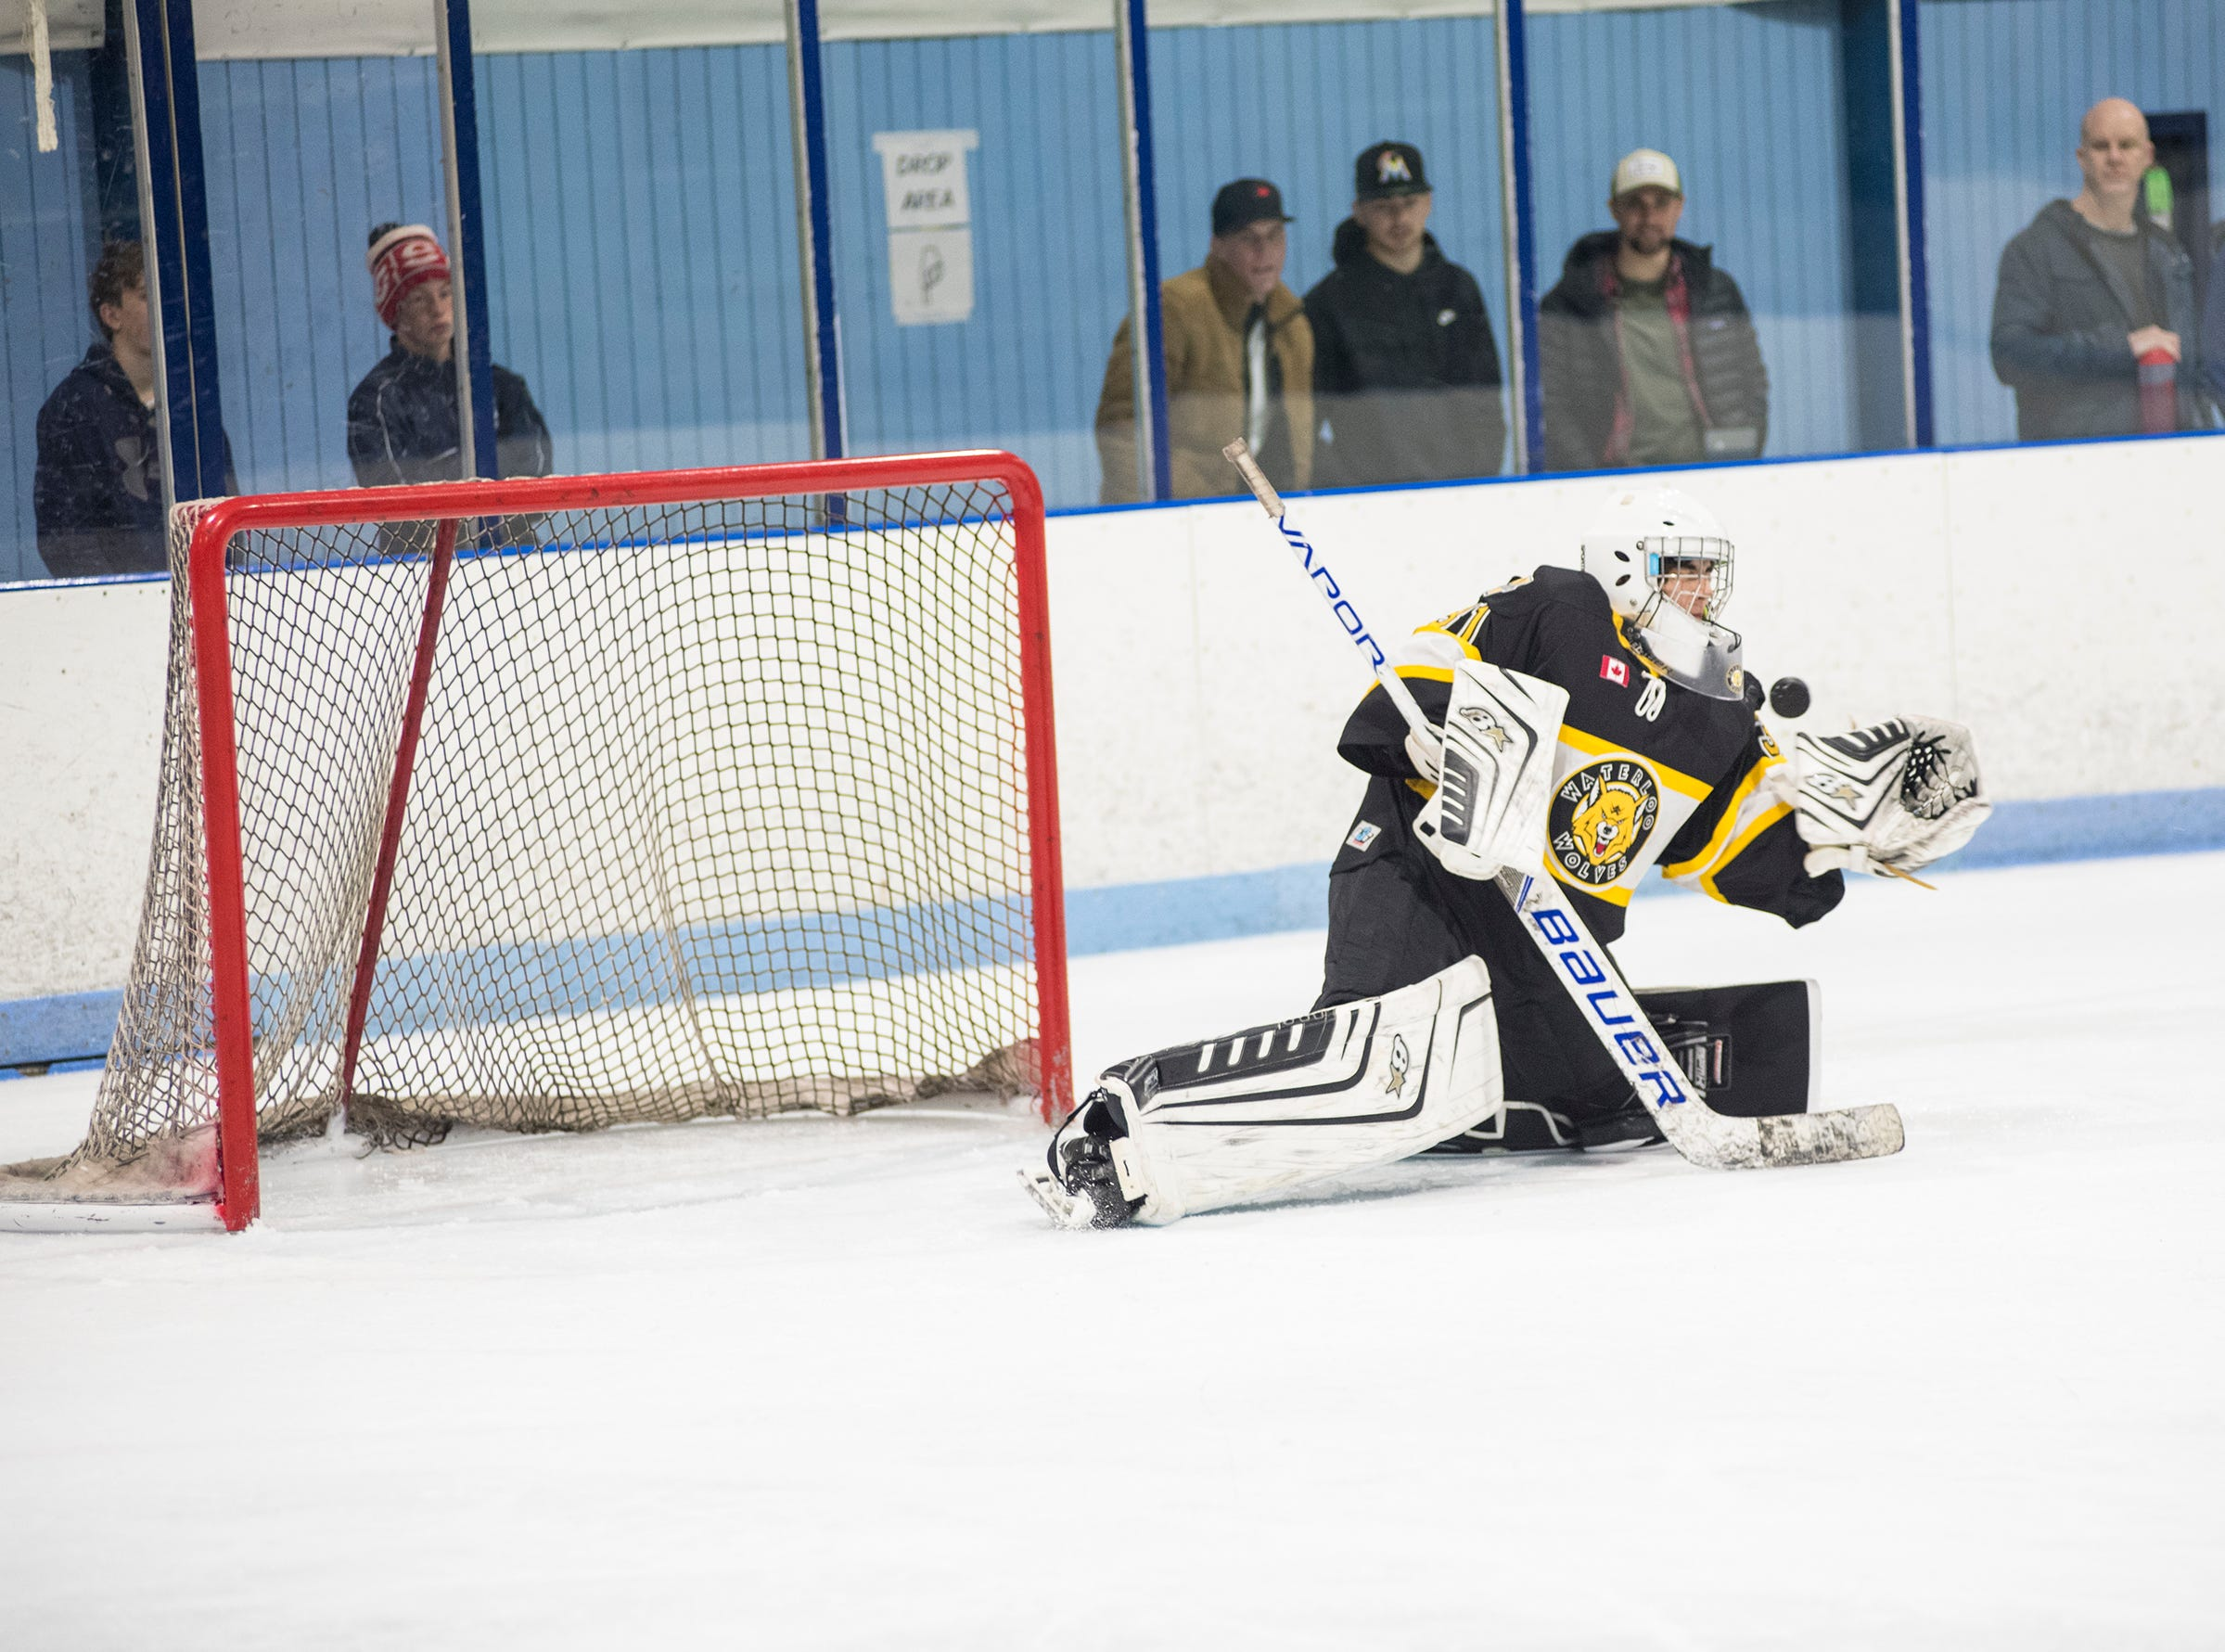 Waterloo Wolves goalie Richard Szajek reaches to block a shot during their BAAA-A Silver Stick Finals match against Don Mills Flyers Friday, Jan. 4, 2019 at Glacier Pointe Ice Complex.